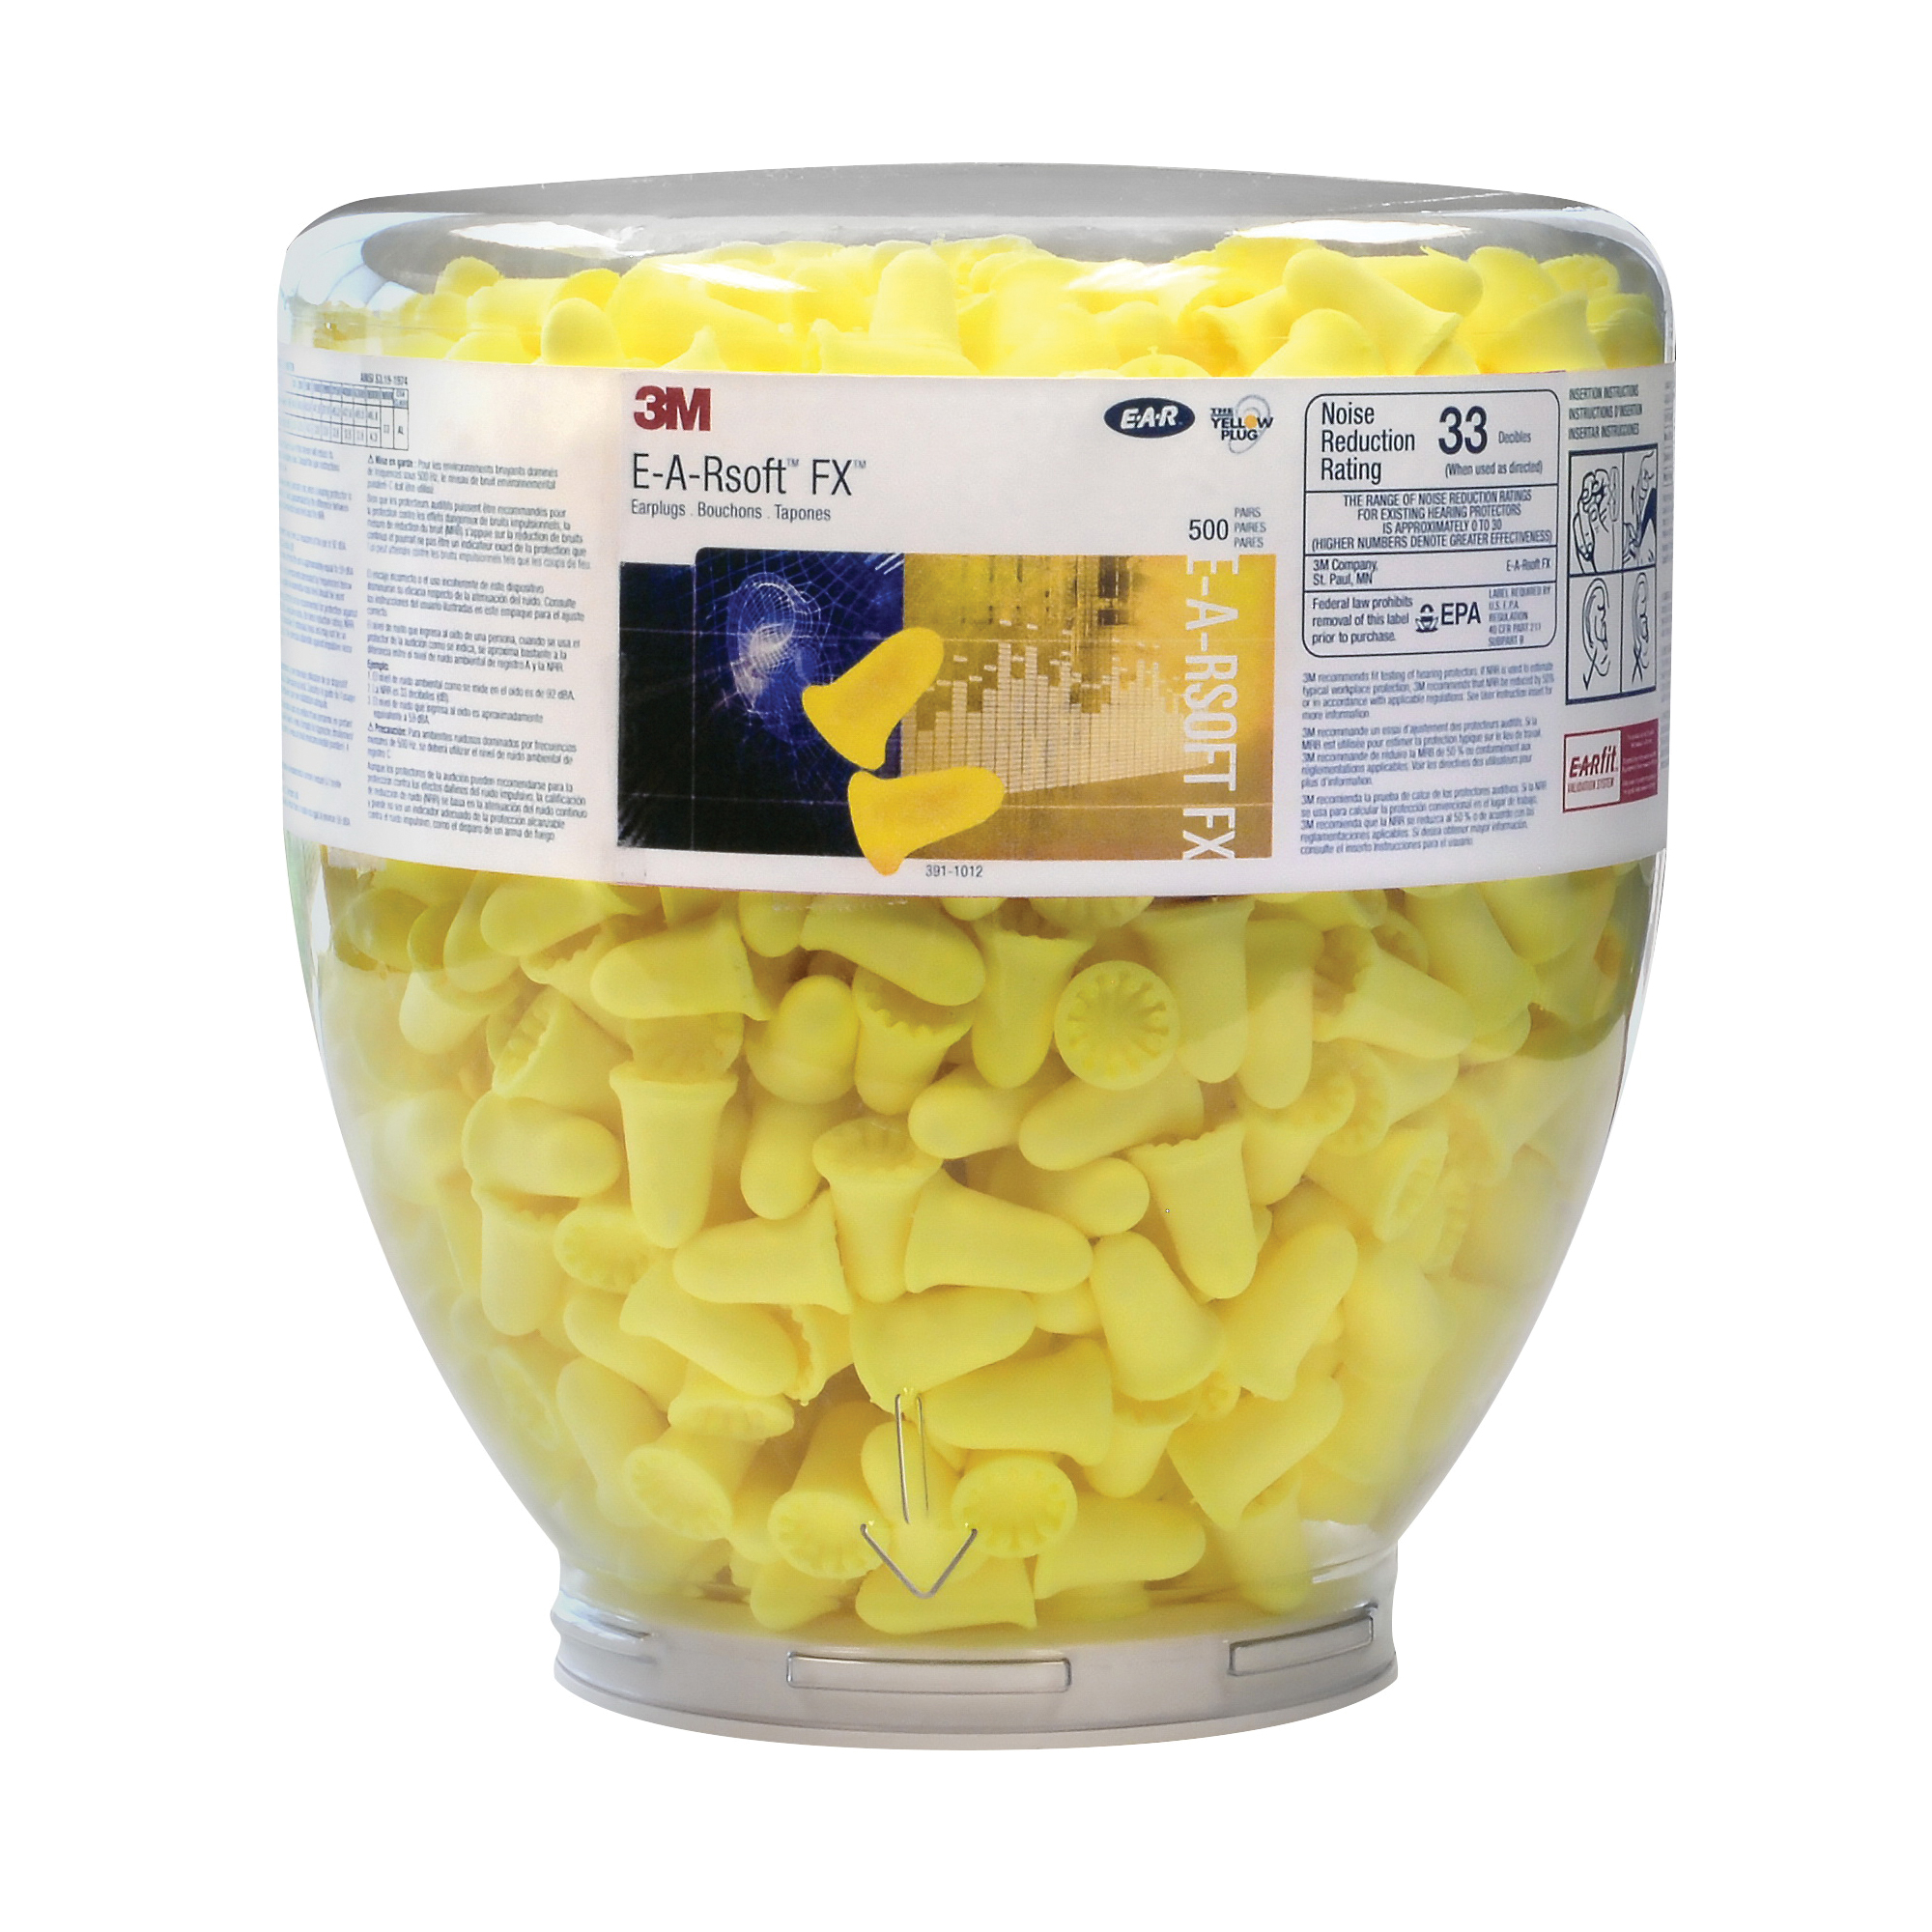 E-A-Rsoft™ 078371-66639 Yellow Neons™ Metal Detectable Earplugs, 33 dB Noise Reduction, Tapered Shape, ANSI S3.19, CSA Class AL, Reusable, Uncorded Design